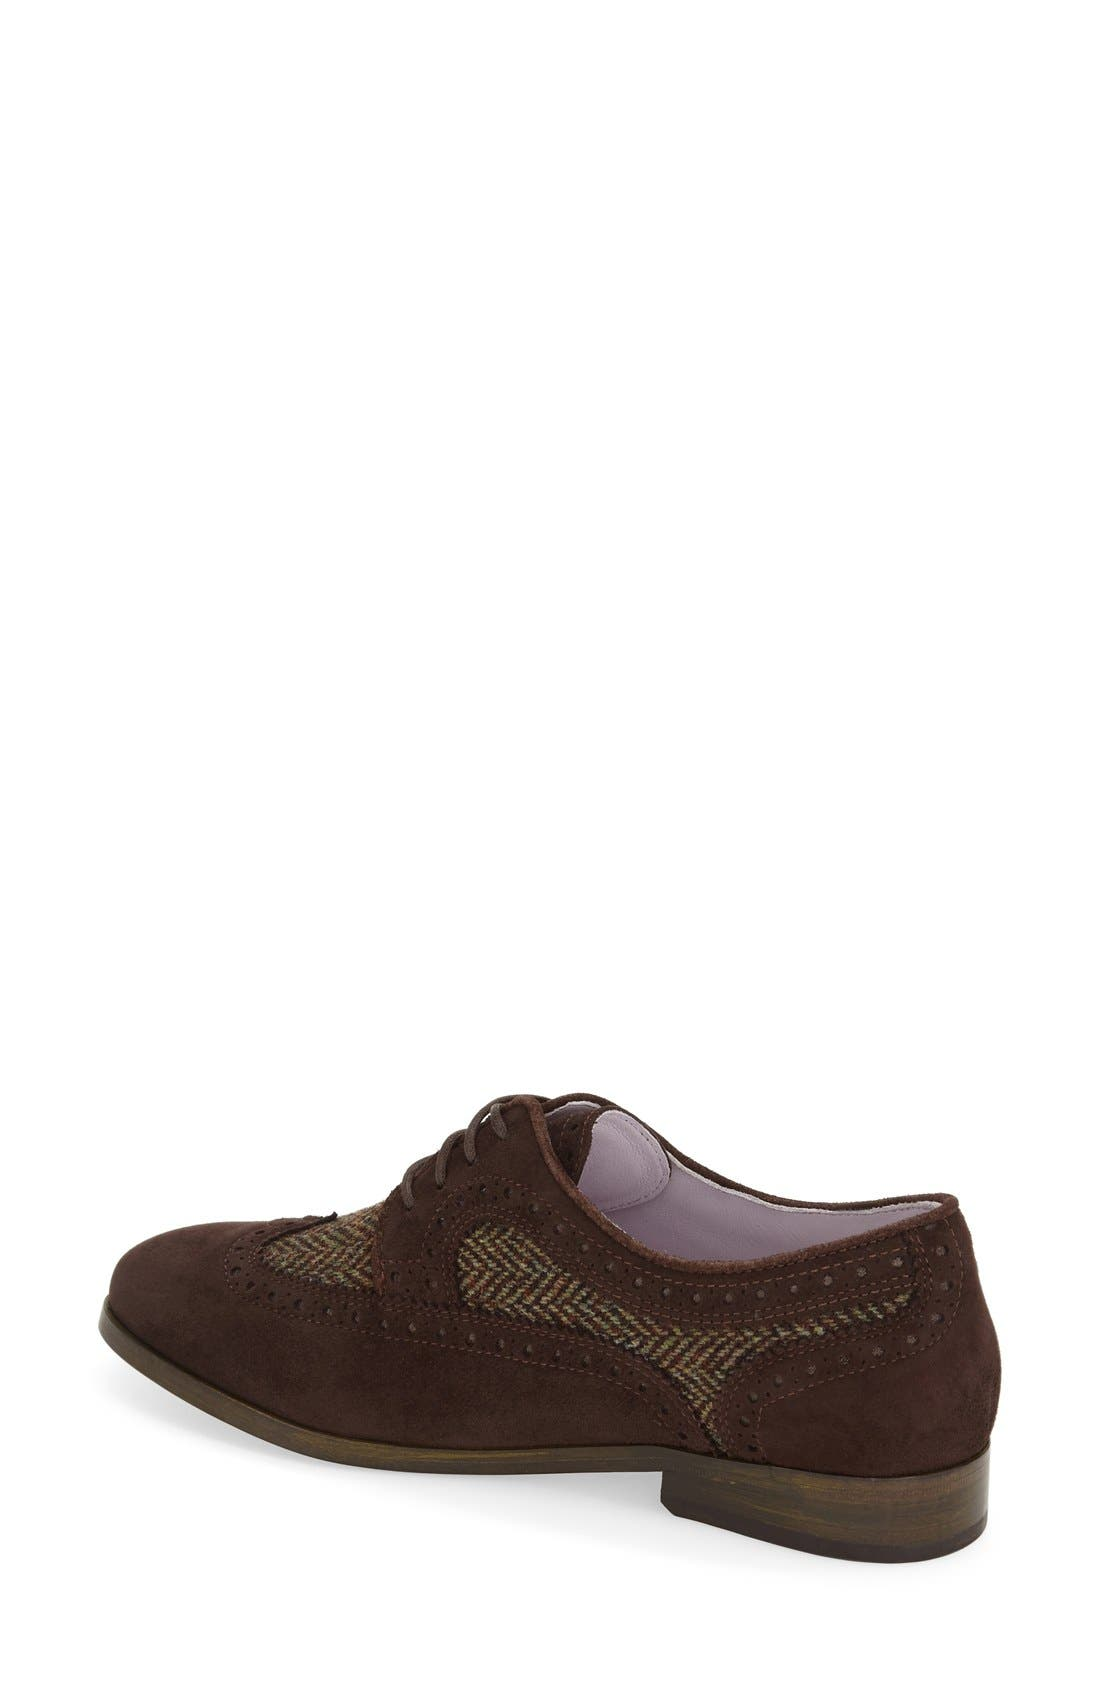 Alternate Image 2  - Johnston & Murphy 'Dinah' Lace-Up Wingtip Oxford (Women)